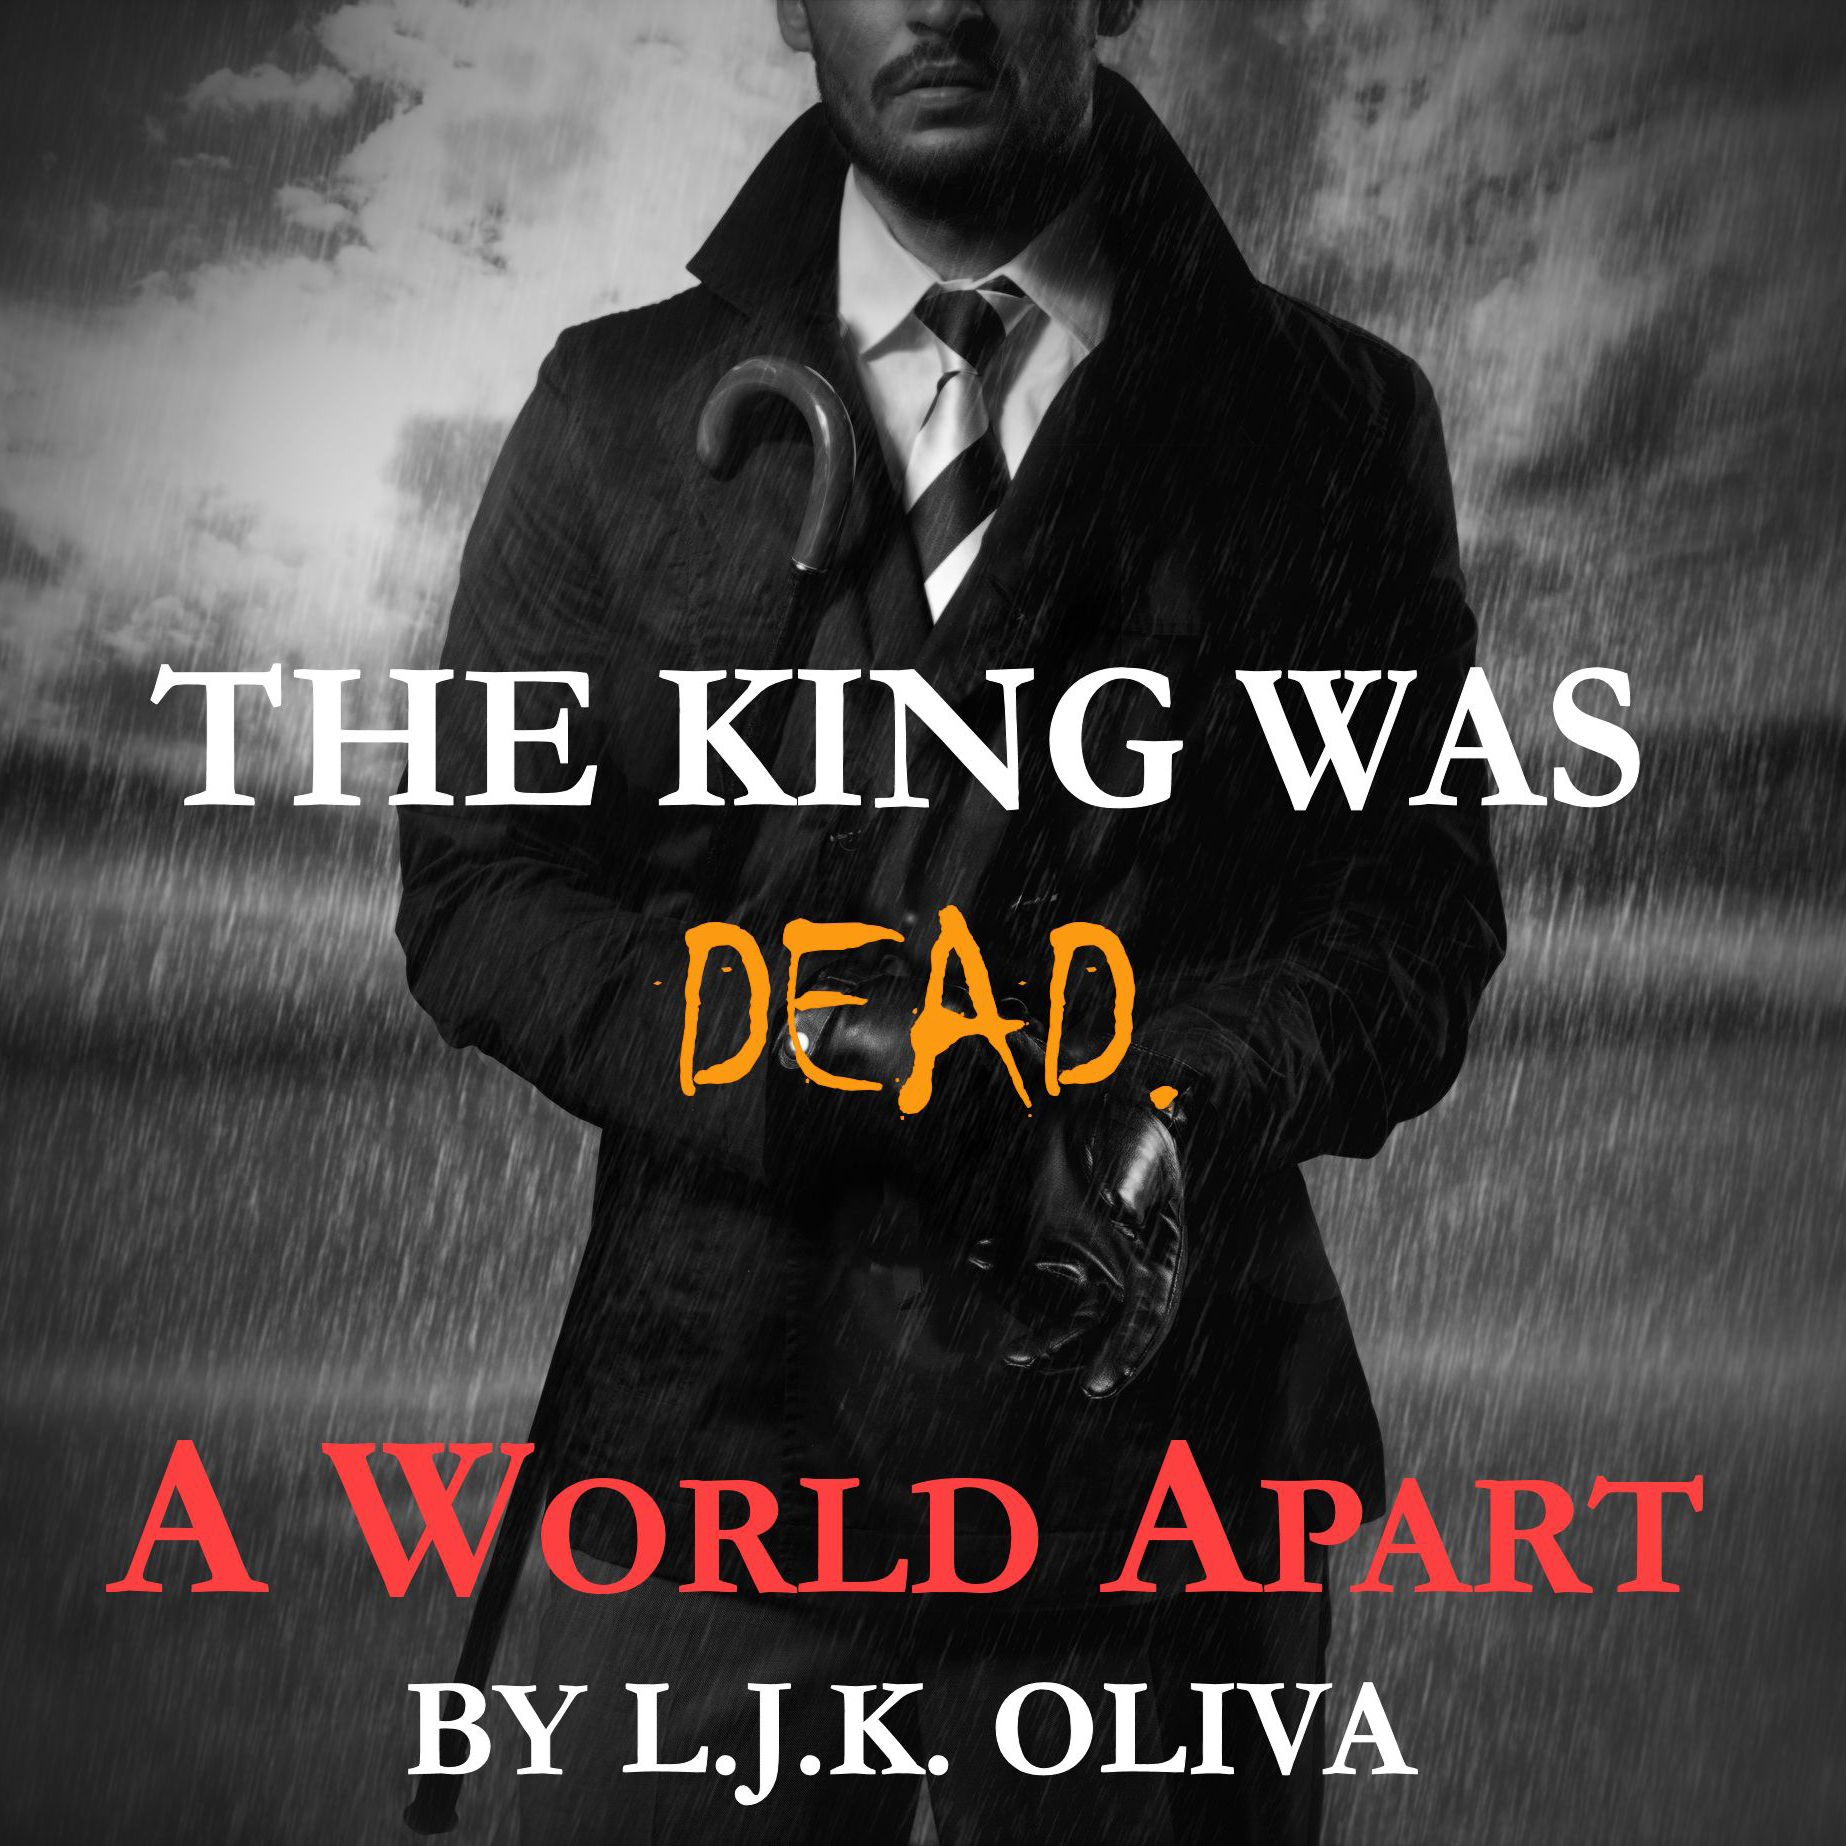 New Release Spotlight: A World Apart by LJK Oliva